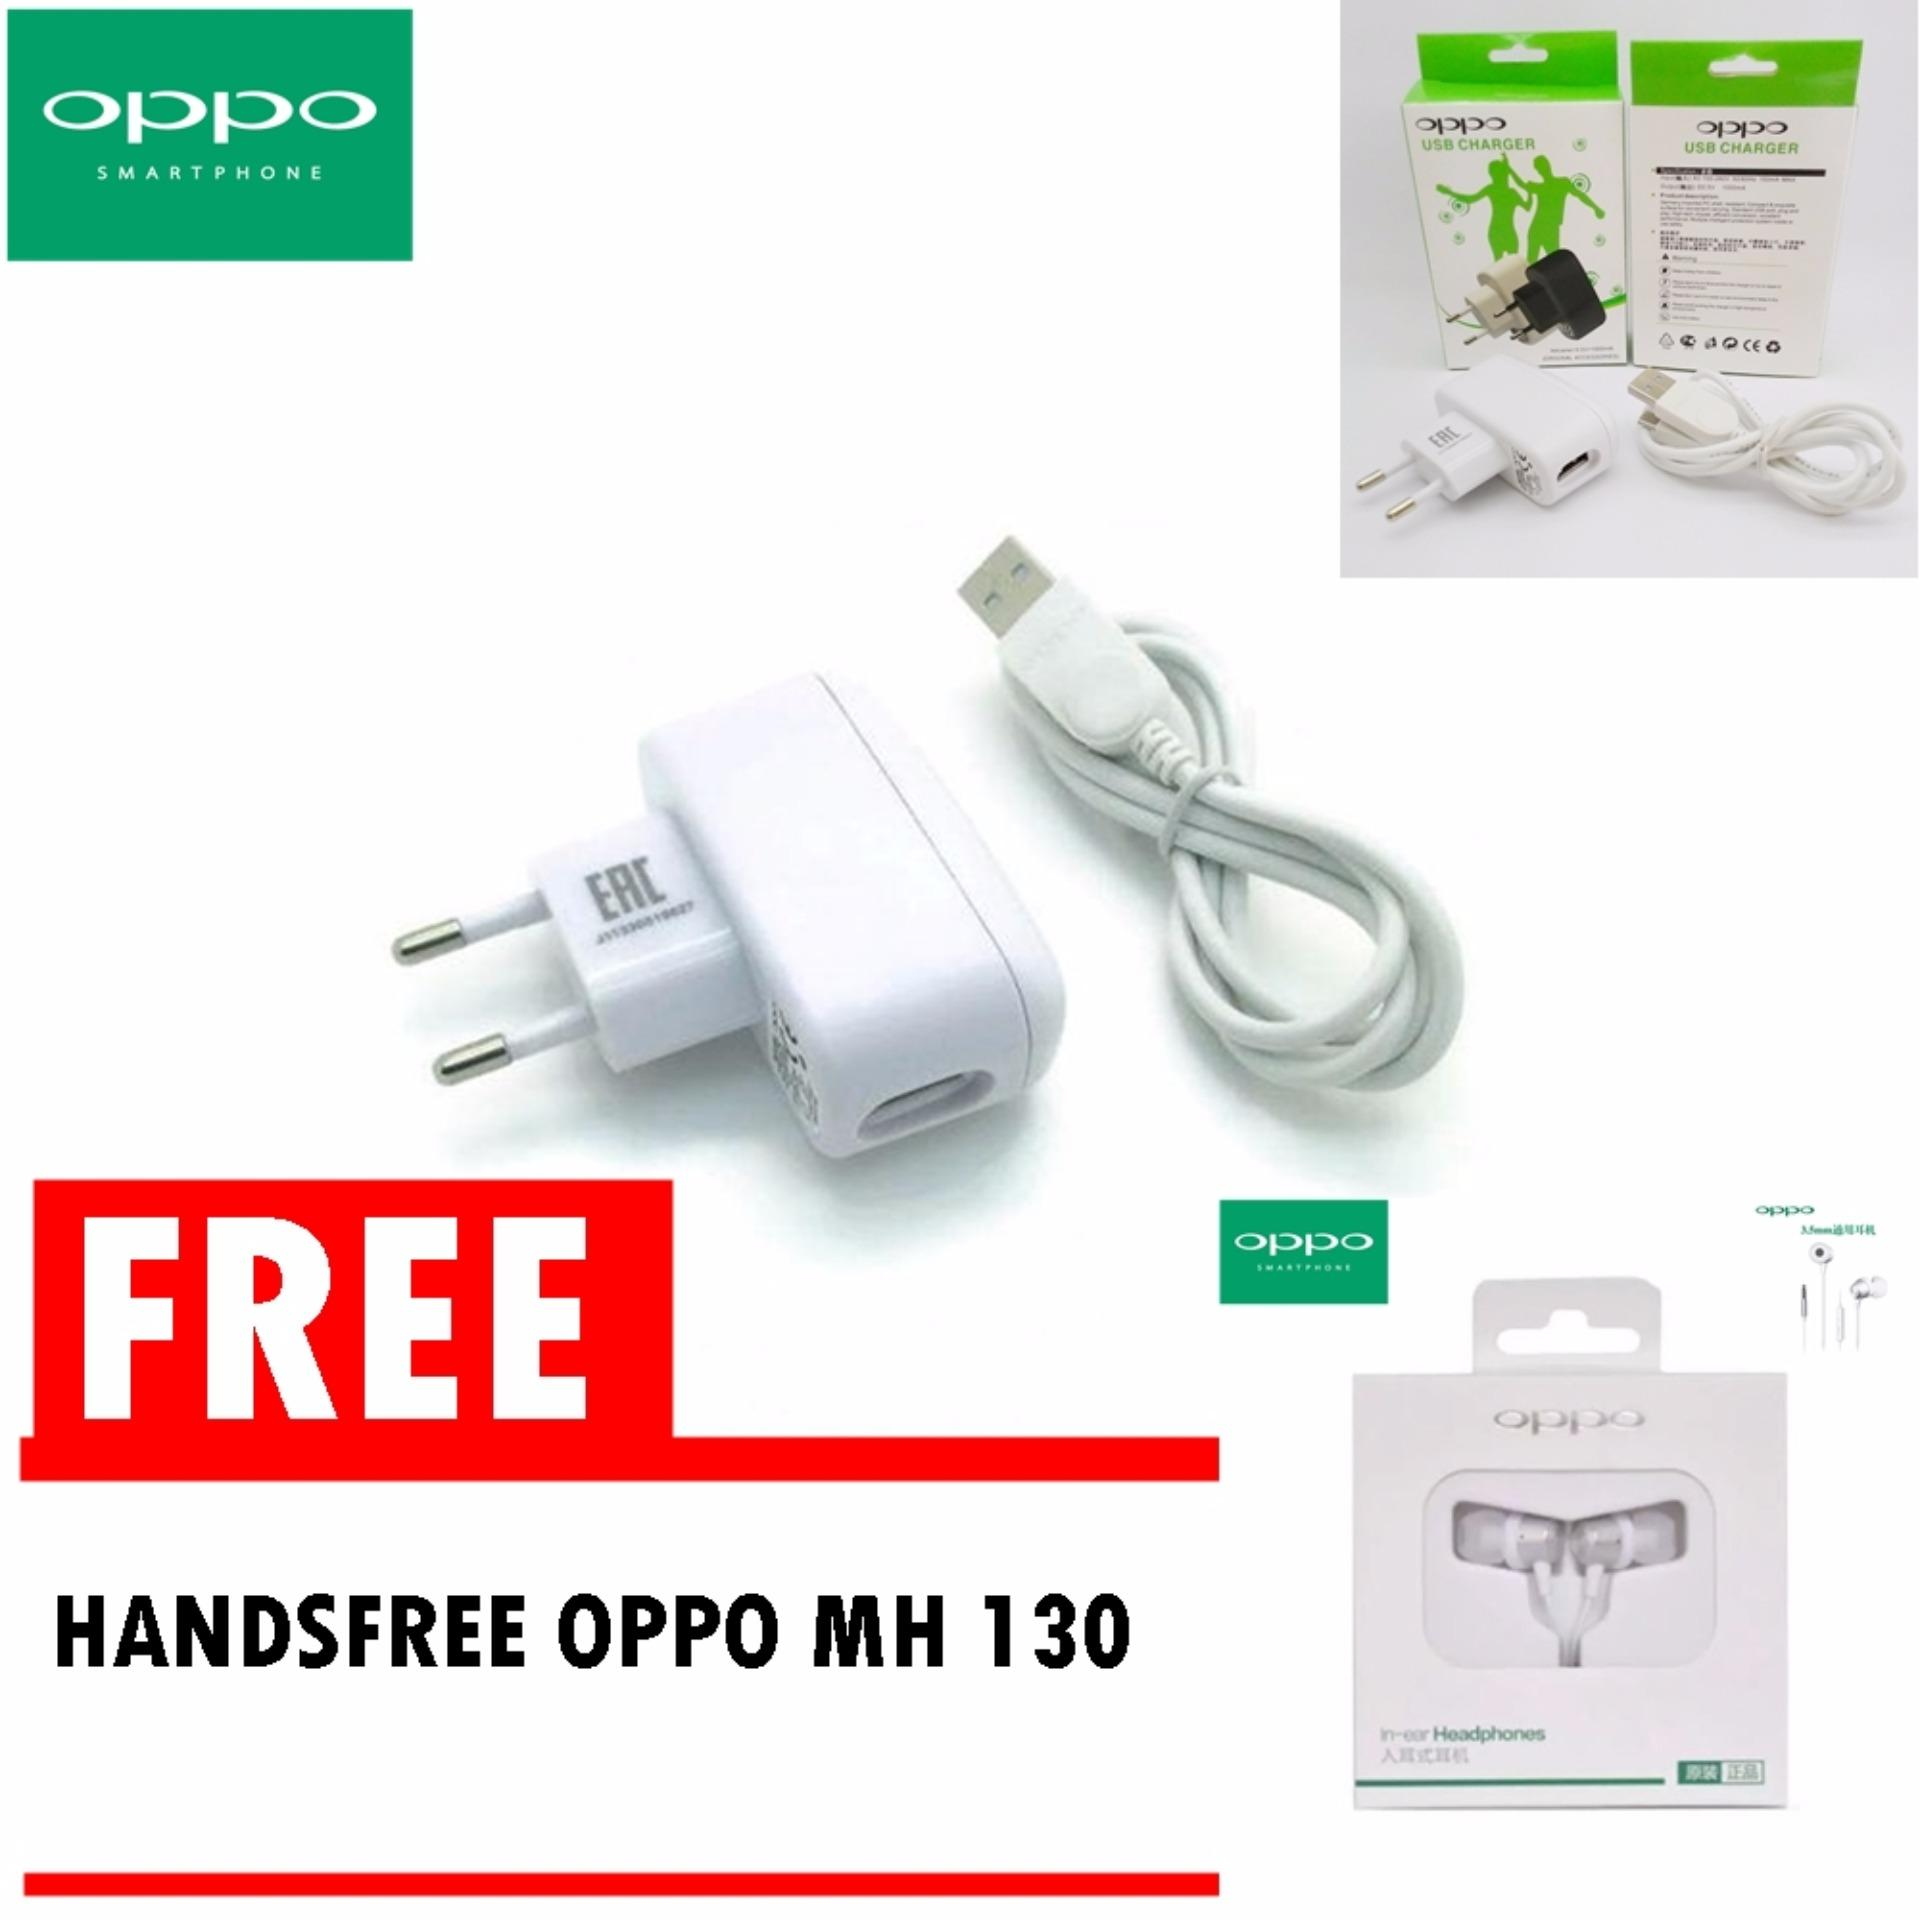 Oppo Travel Charger Cable Data Micro Putih White Free Oppo Original Handsfree Mh130 White Earbud Handsfree Earphones Silver Di Dki Jakarta